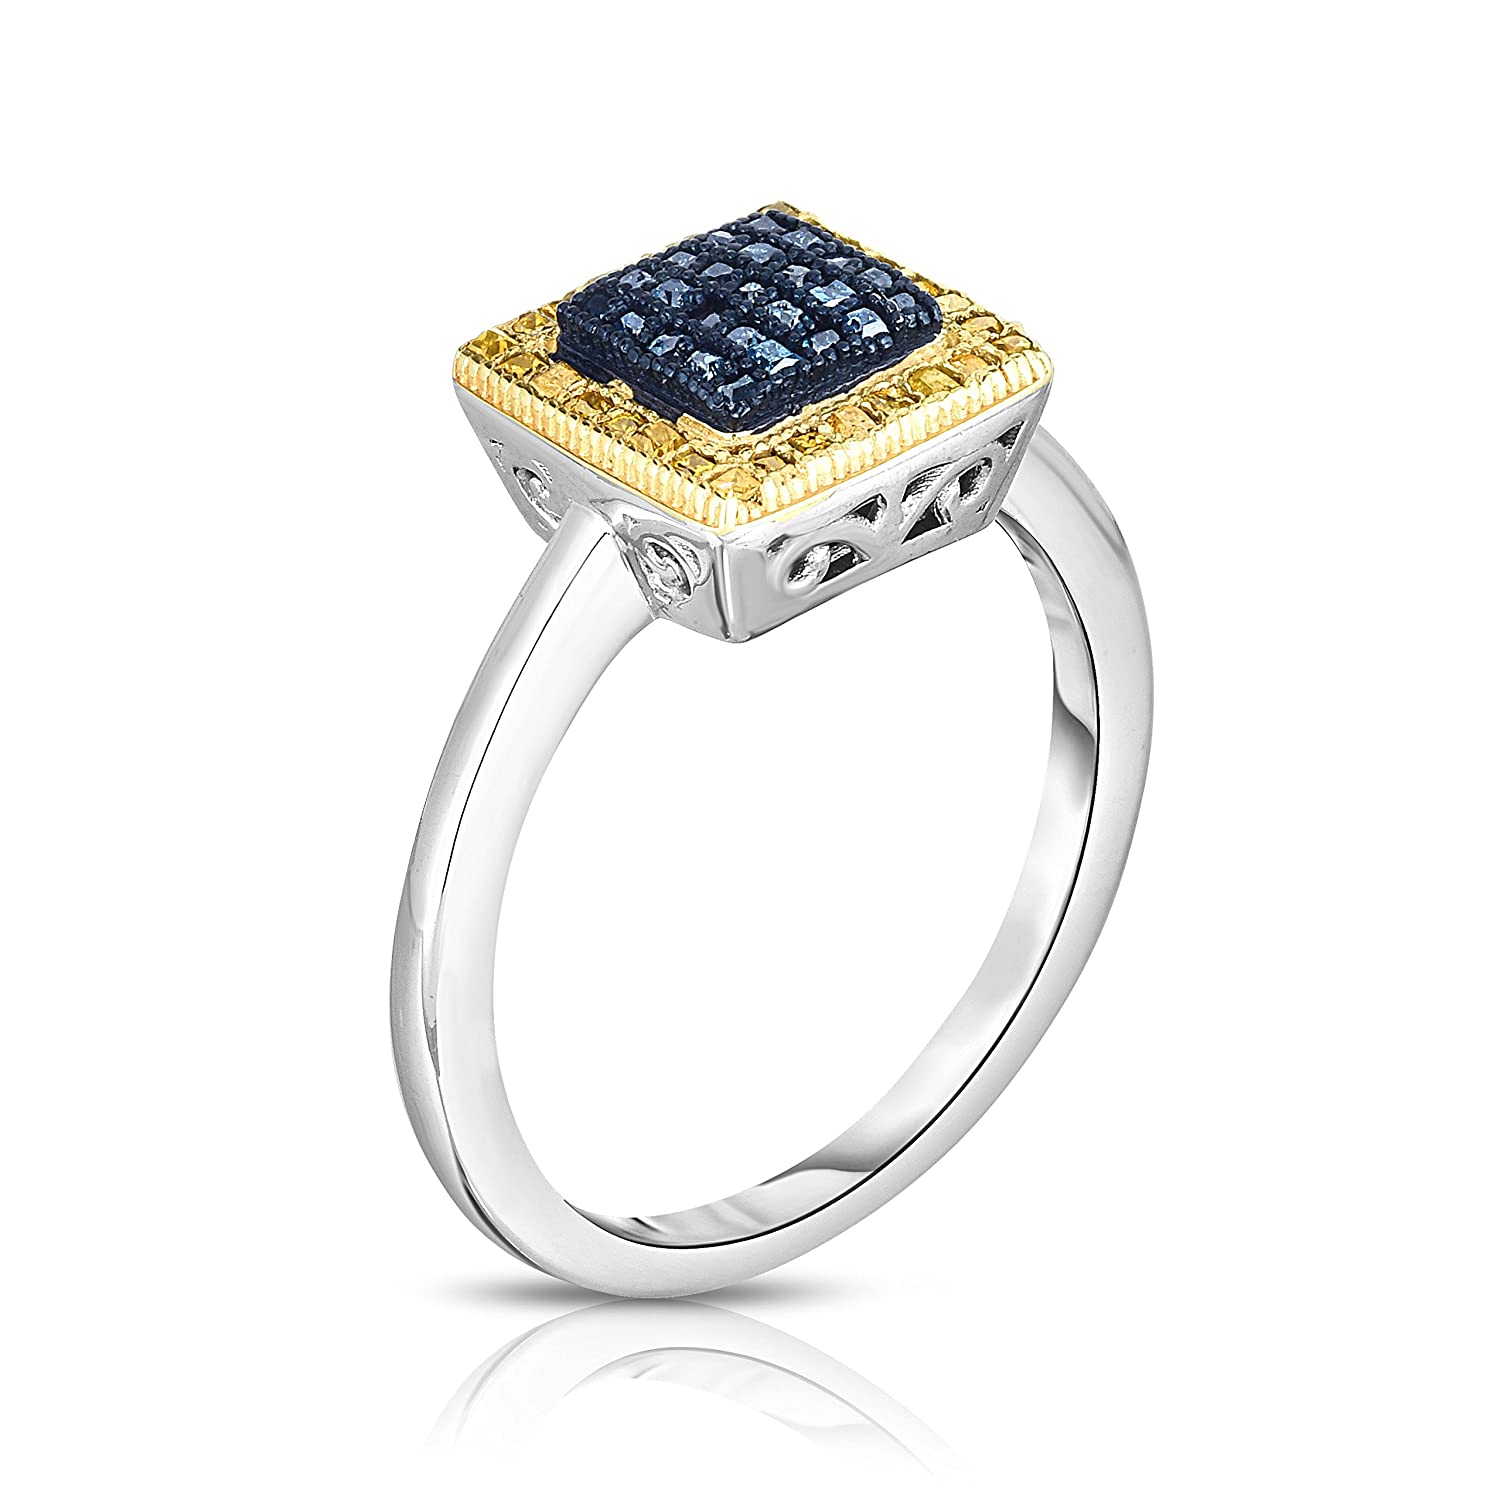 Fancy Blue and Yellow Diamond Square Engagement Ring 1//3ctw Sizes 5-9